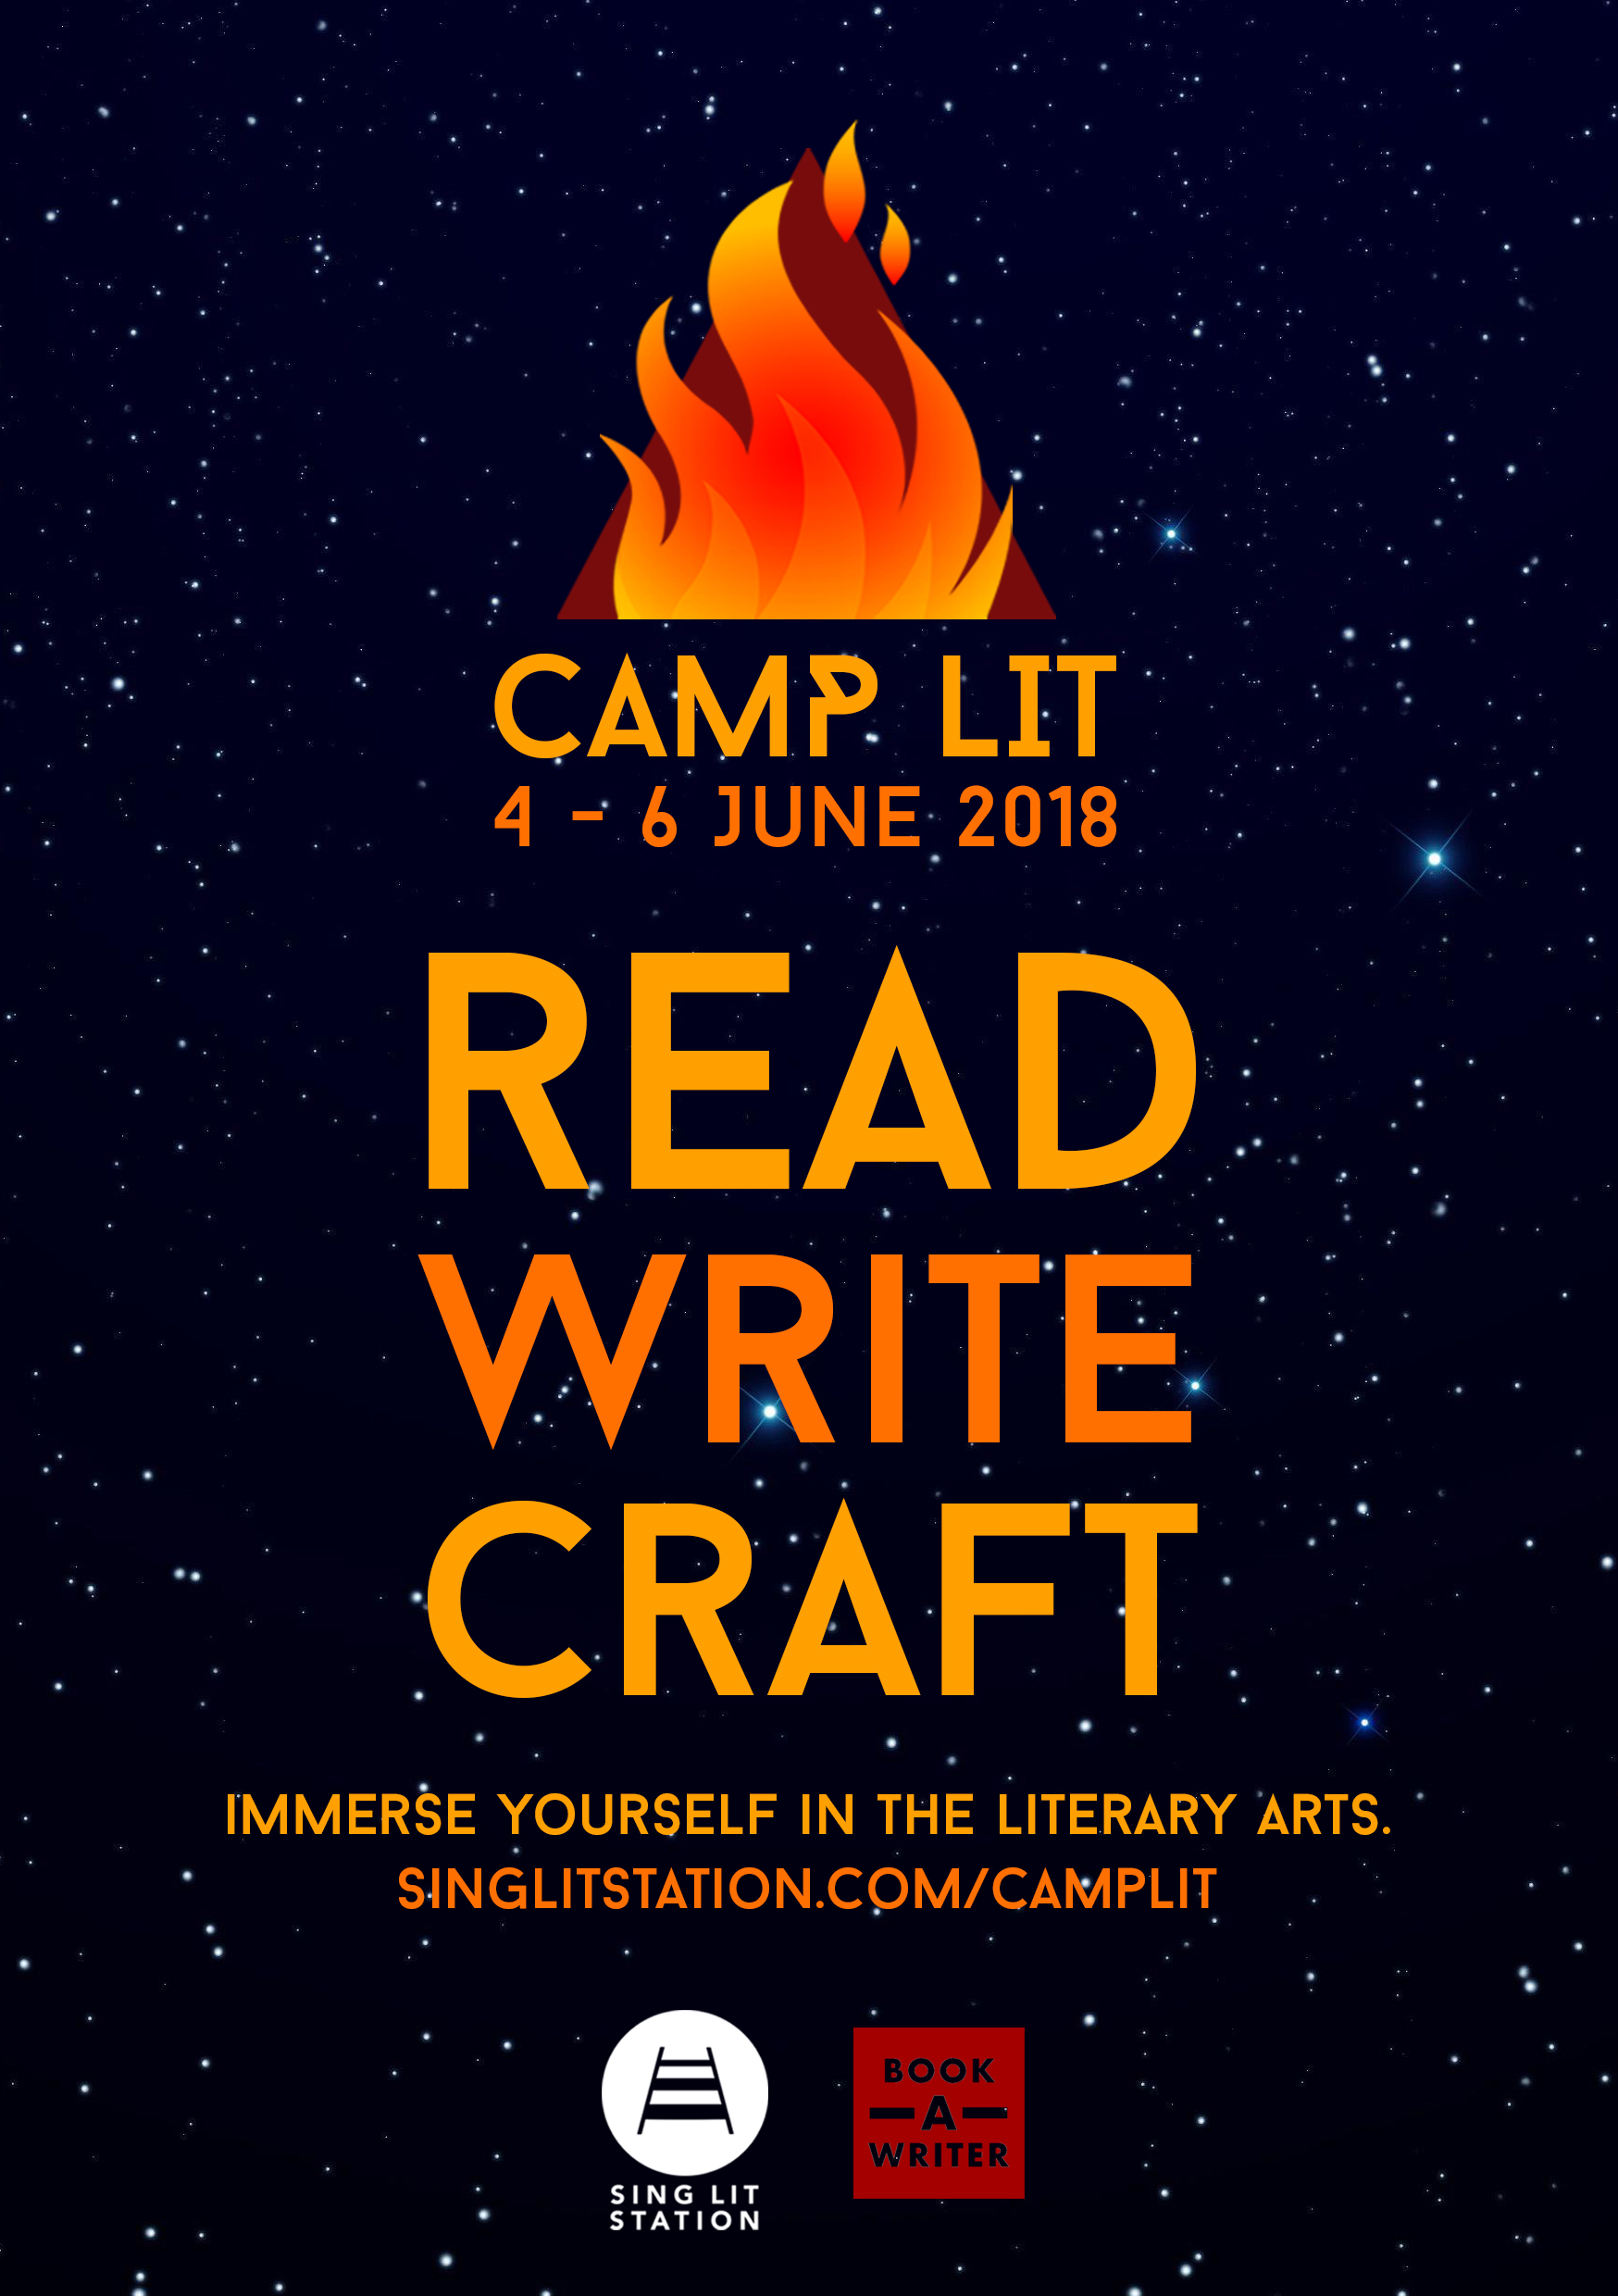 A5 Camp Lit Flyer 2018.1.jpg